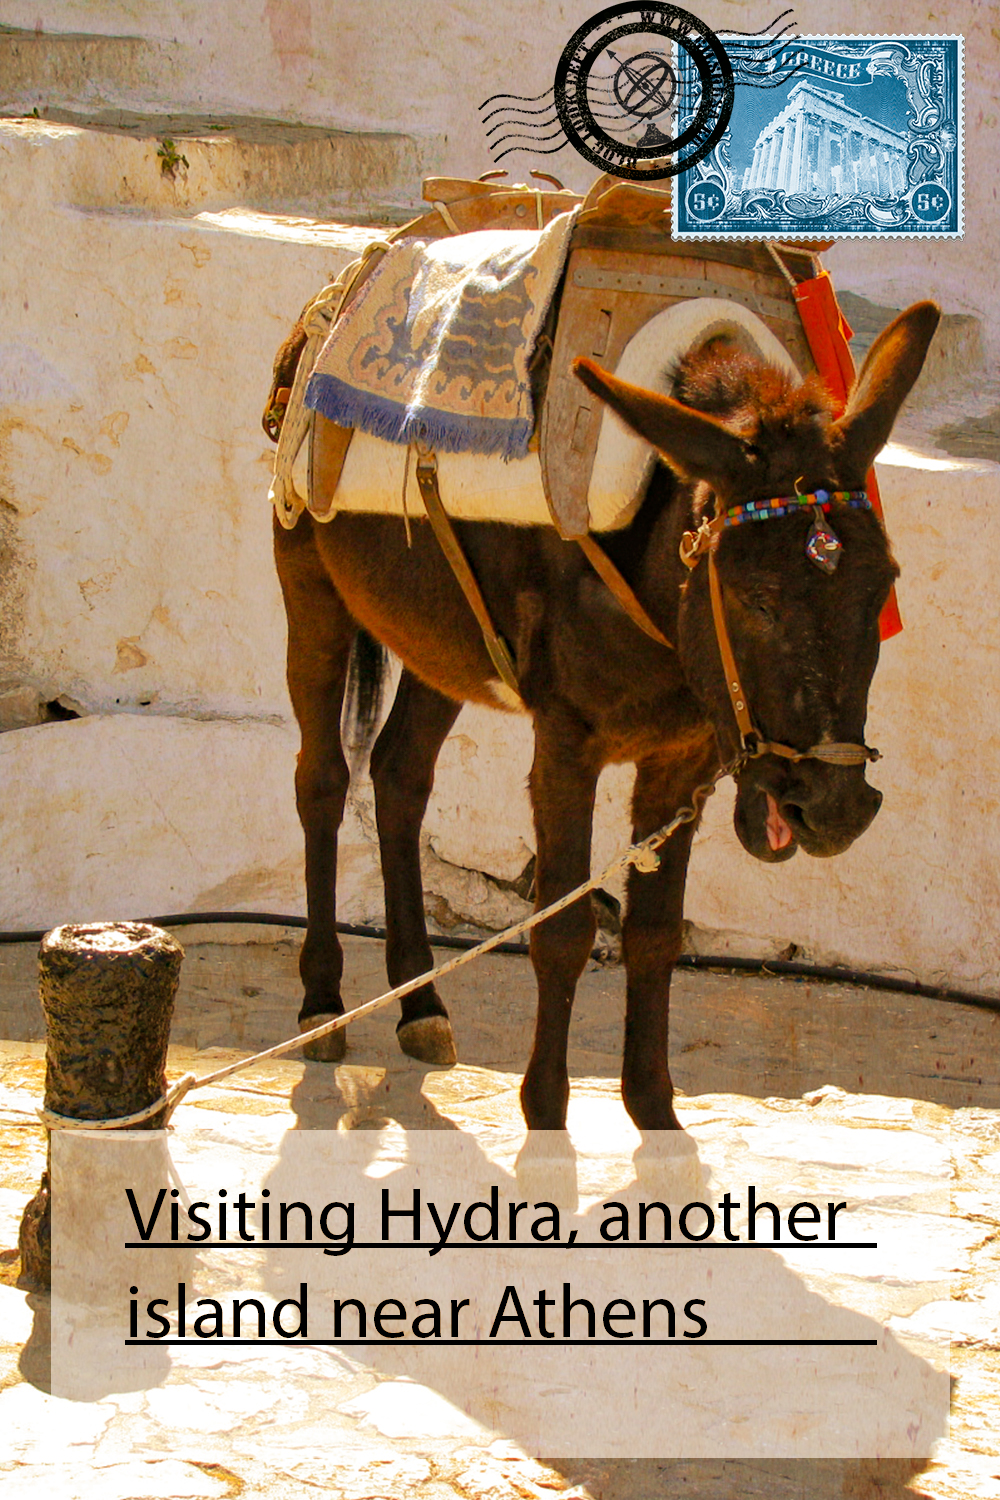 Visiting Hydra, another island near Athens